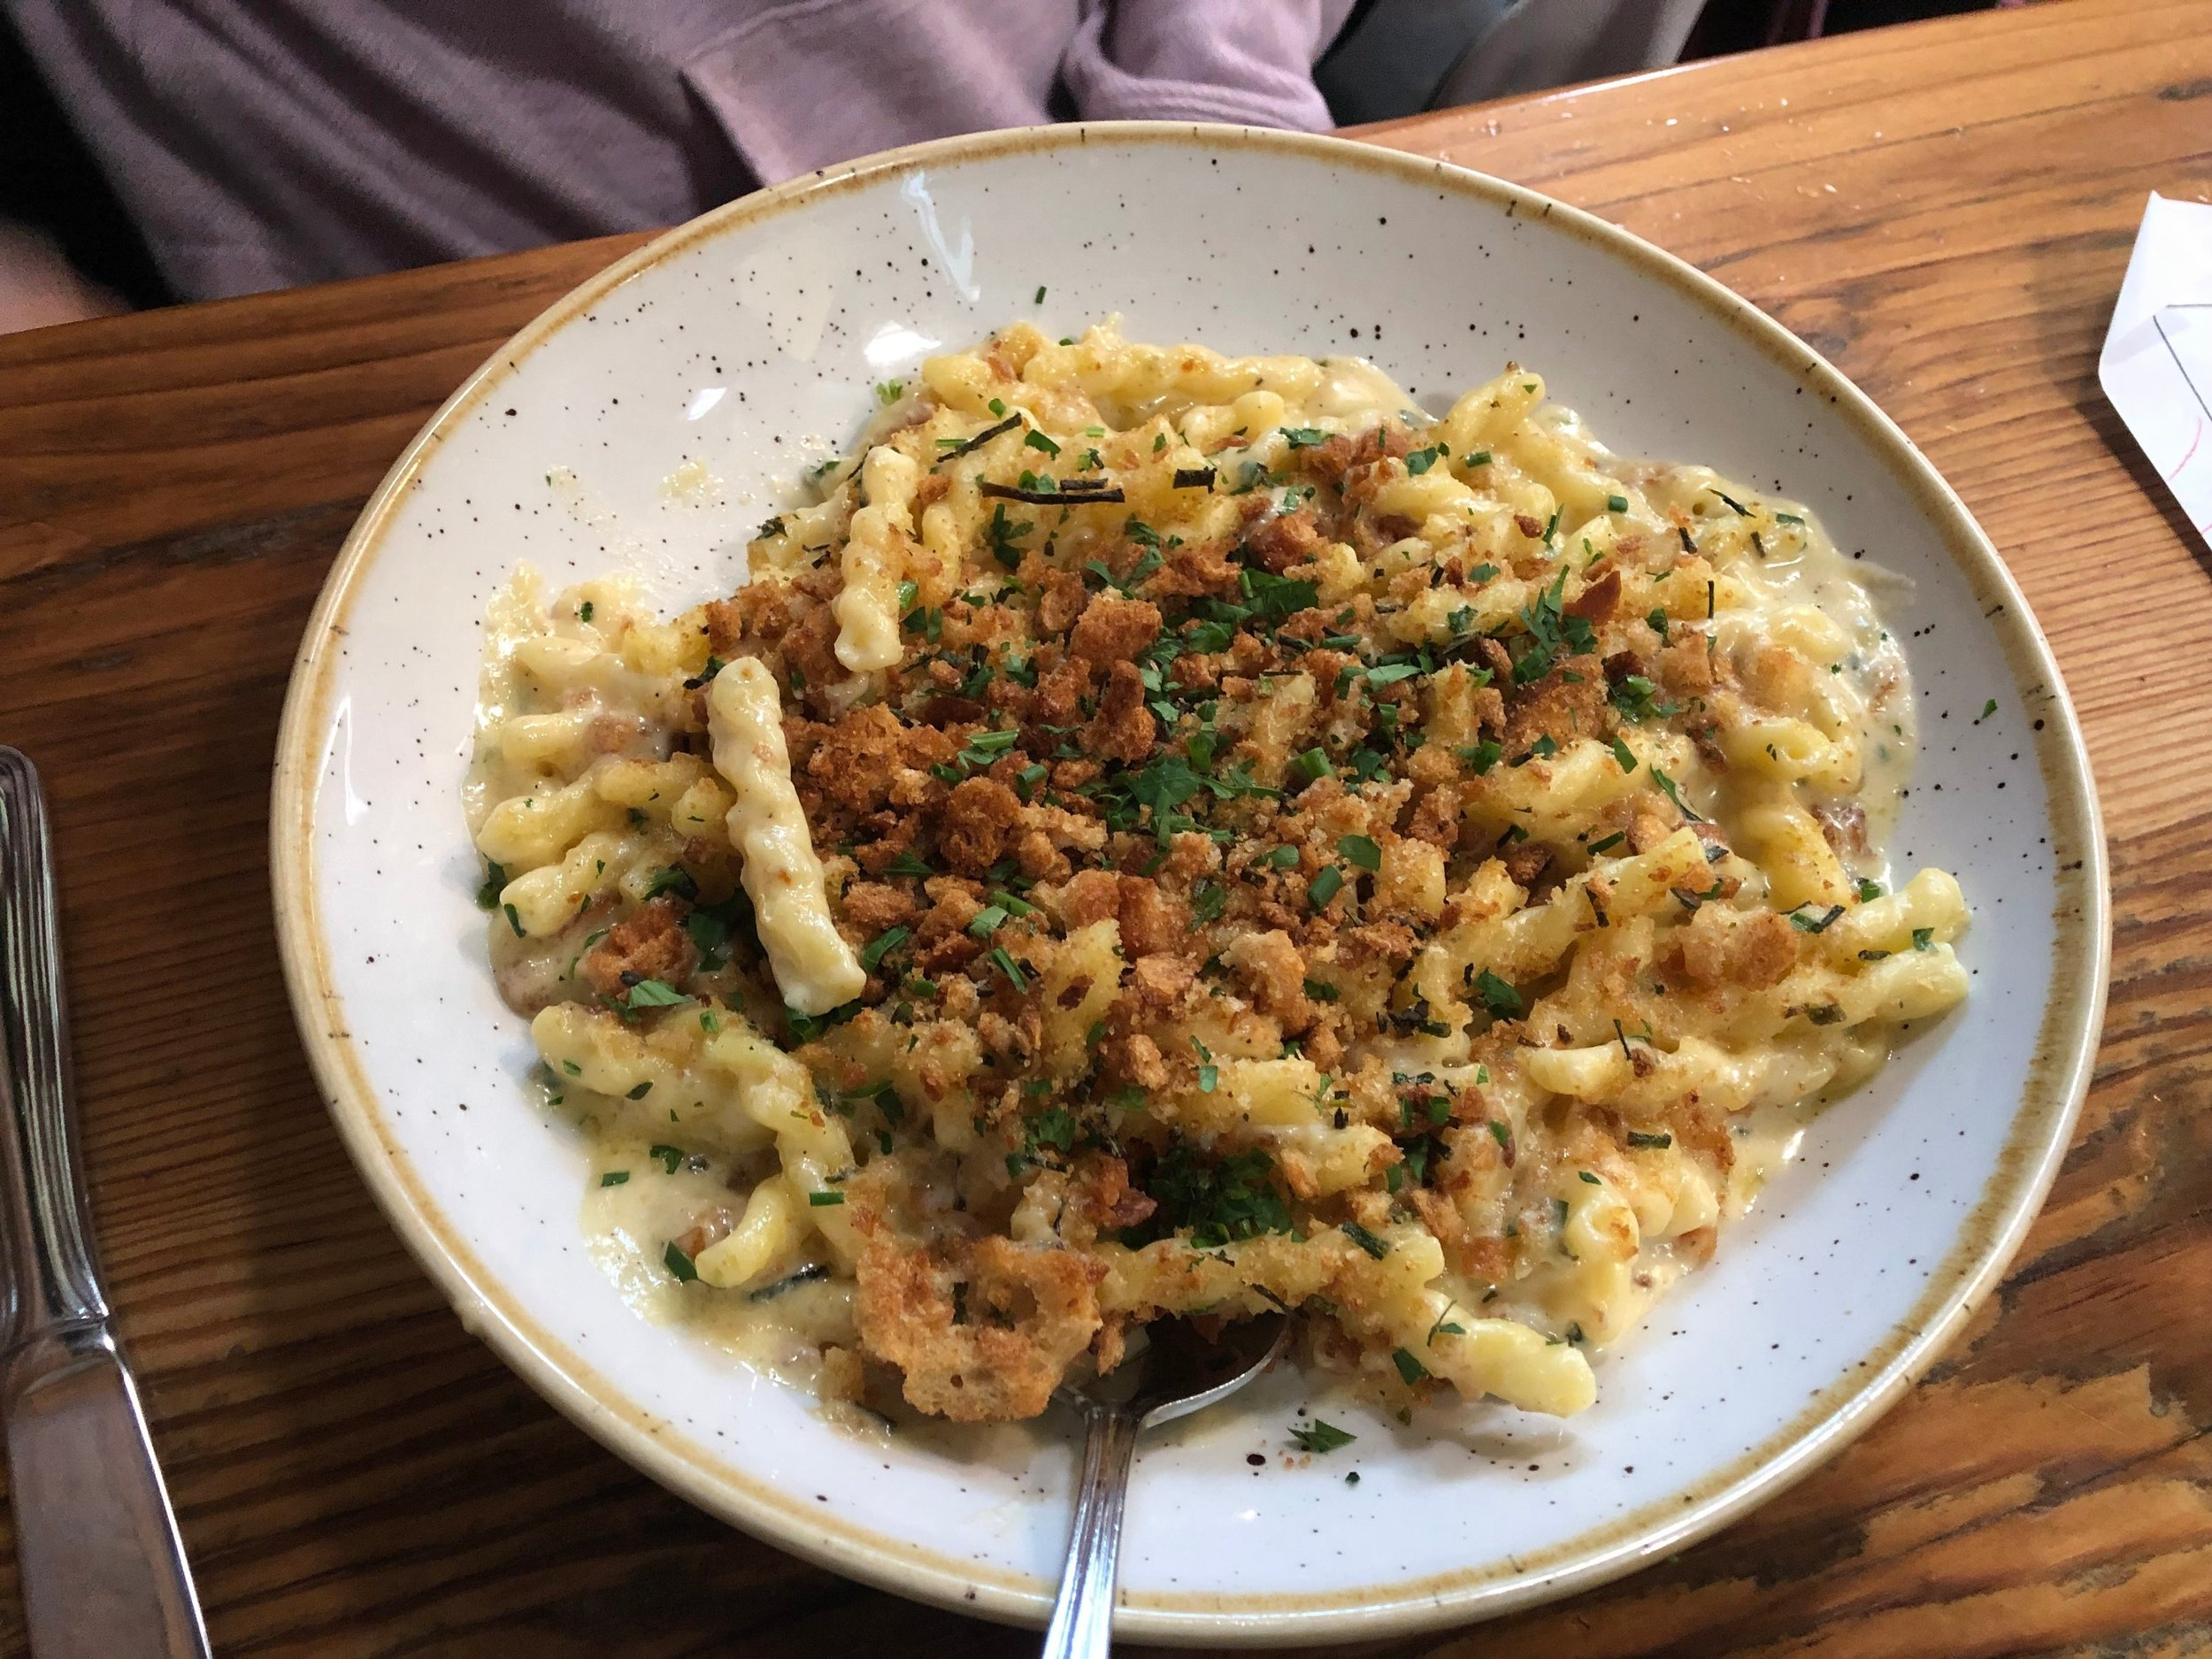 The Smoky Mac n' Cheese at Pfriem in Hood River has to be top 10 in the world. Serious. Here is the menu description: gemelli pasta, three-cheese sauce, garlic breadcrumbs, fresh herbs - 11; add bacon lardons - 3; add bratwurst - 5. Image Courtesy: Dan Meyers